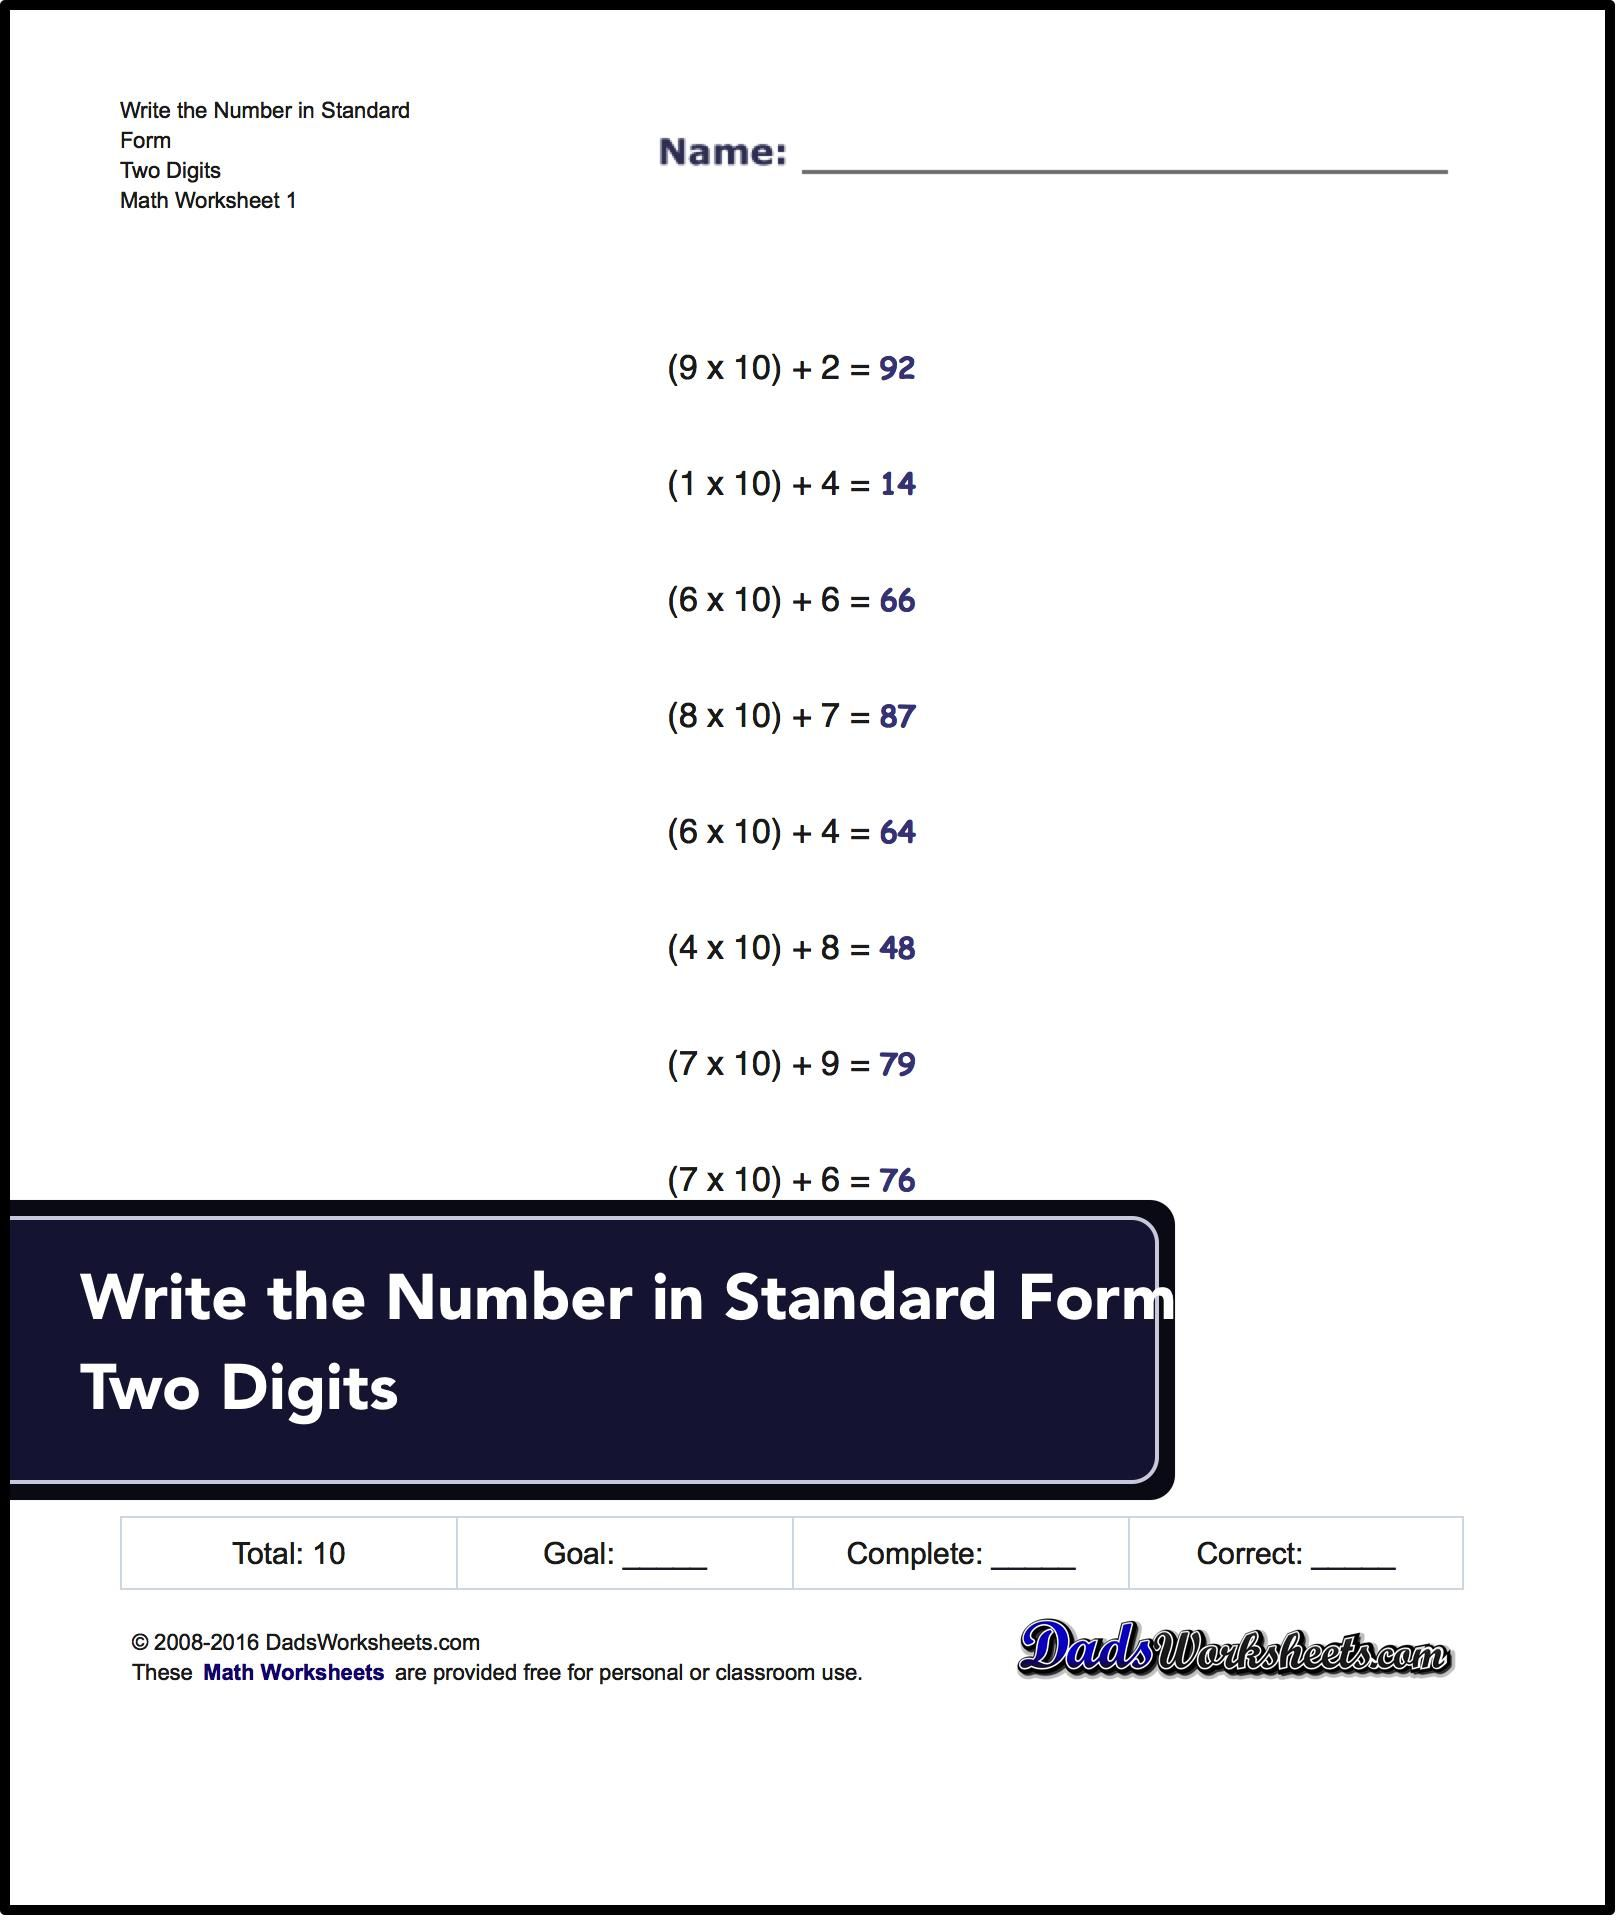 Practice Expanded Form Worksheets For Converting Numbers